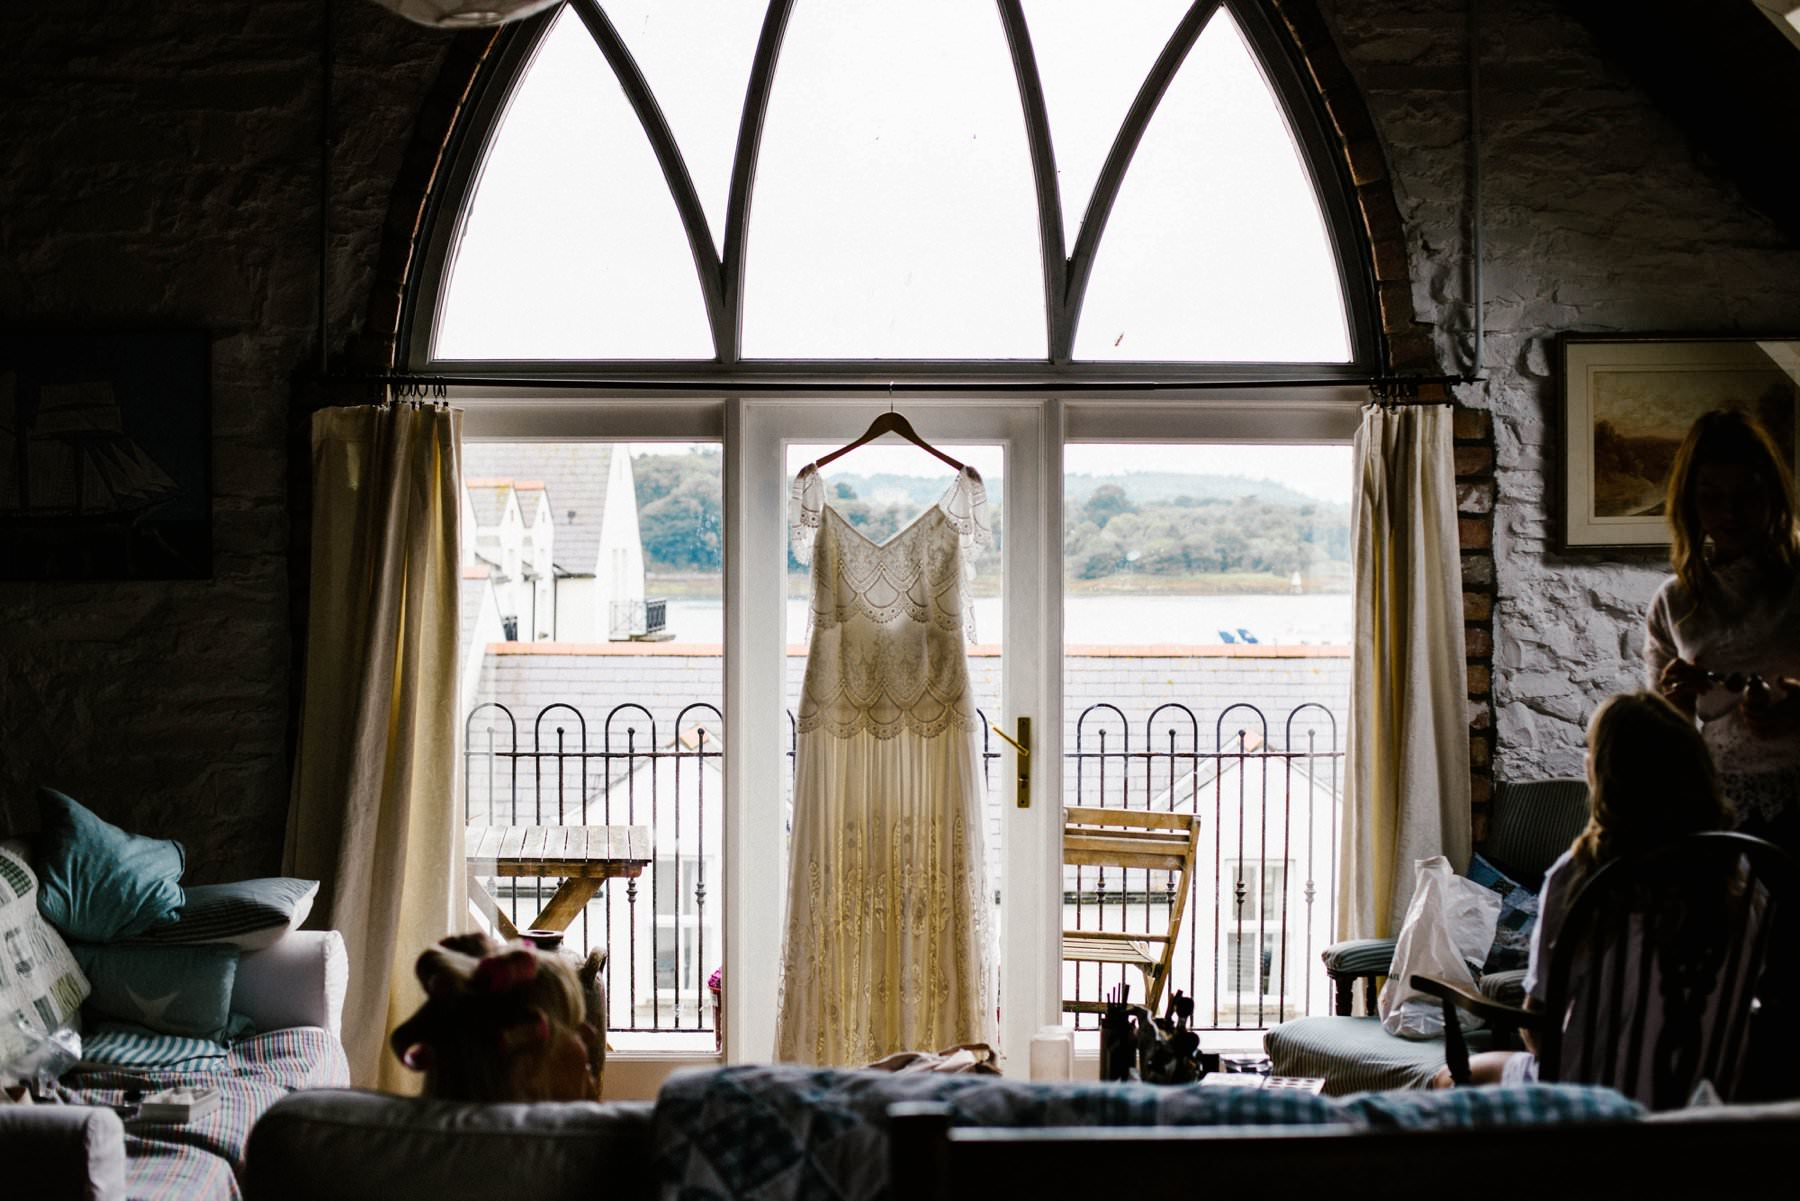 brides dress hanging in window wedding photographer northern ireland